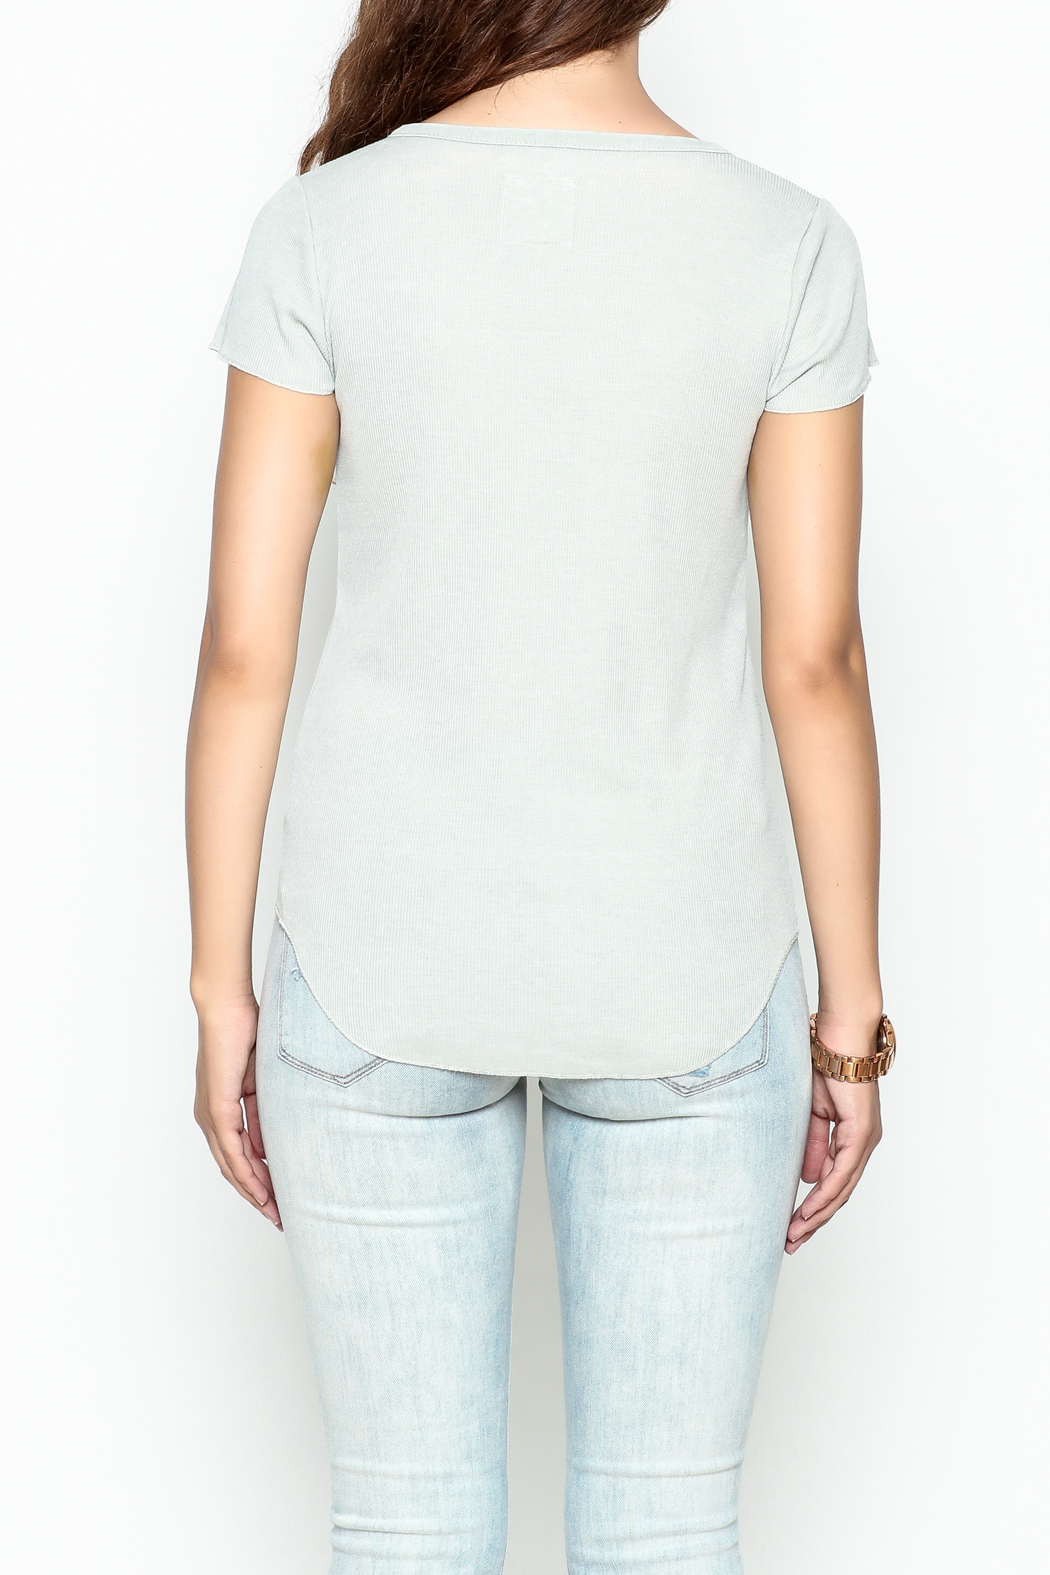 Chaser Ribbed Short Sleeved Henley - Back Cropped Image